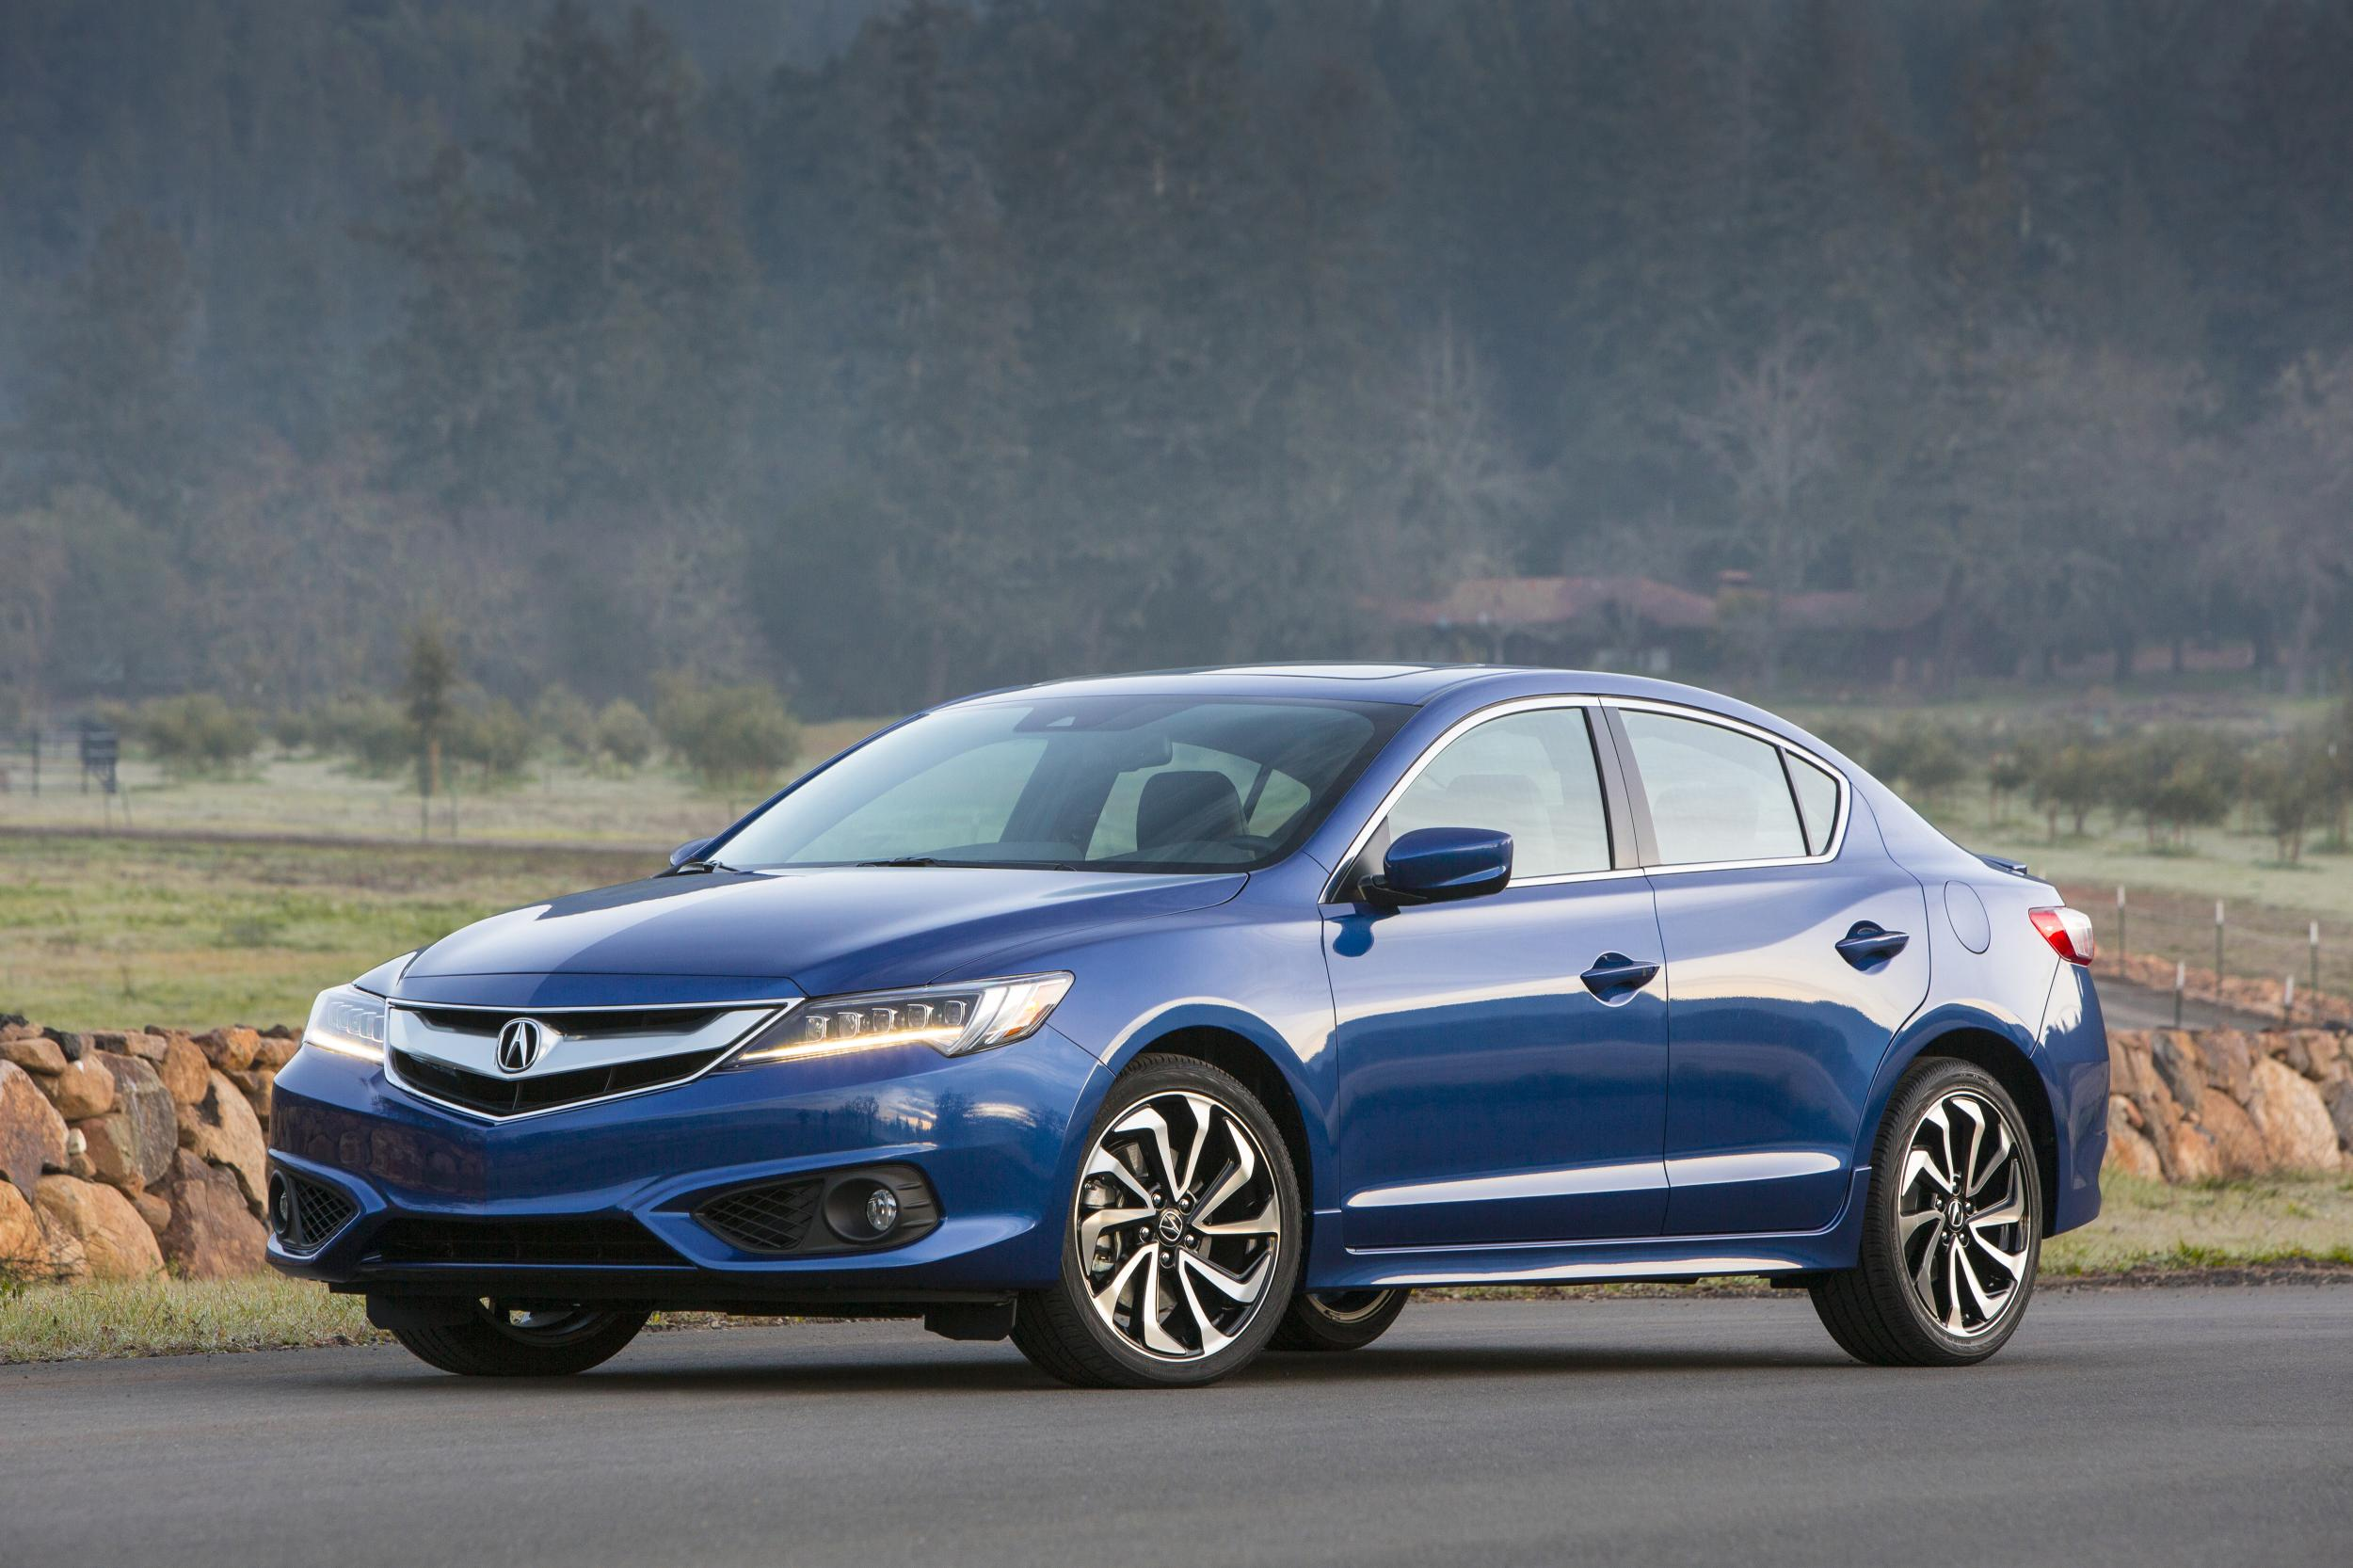 THE 2016 ACURA ILX REDESIGNED, REENGINEERED AND REBORN AS ...